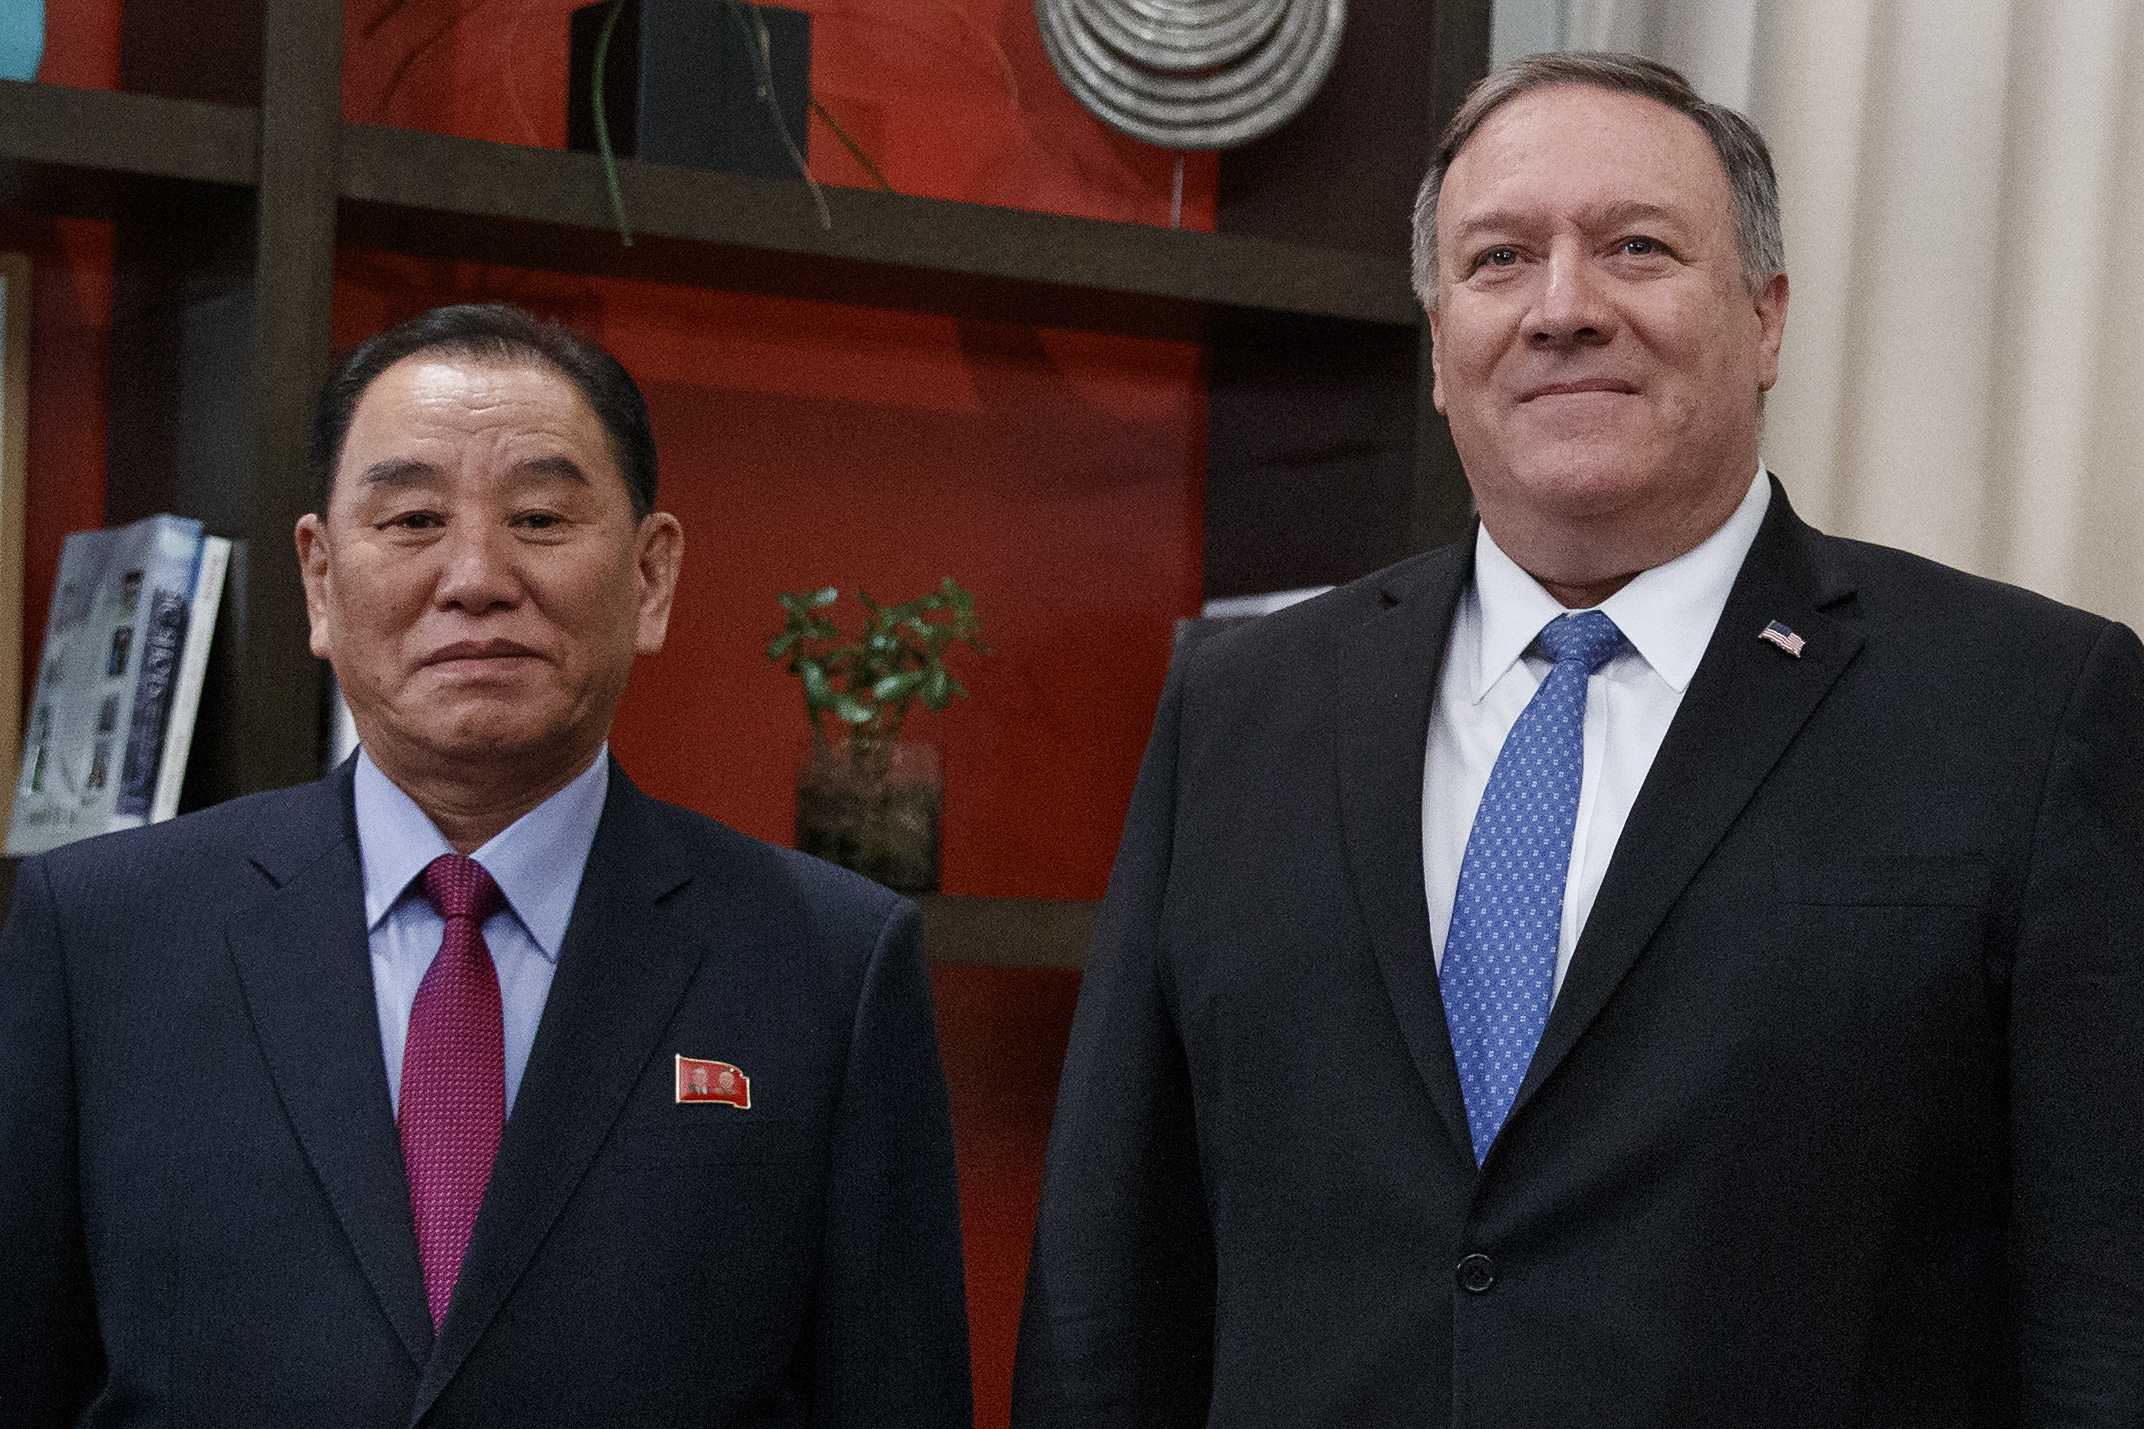 Secretary of State Mike Pompeo, right, and Kim Yong Chol, a North Korean senior ruling party official and former intelligence chief, met at the Dupont Circle Hotel in Washington, Friday, Jan. 18, 2019 to make progress toward a second summit between President Trump and North Korean leader Kim Jong Un. (Carolyn Kaster, AP)